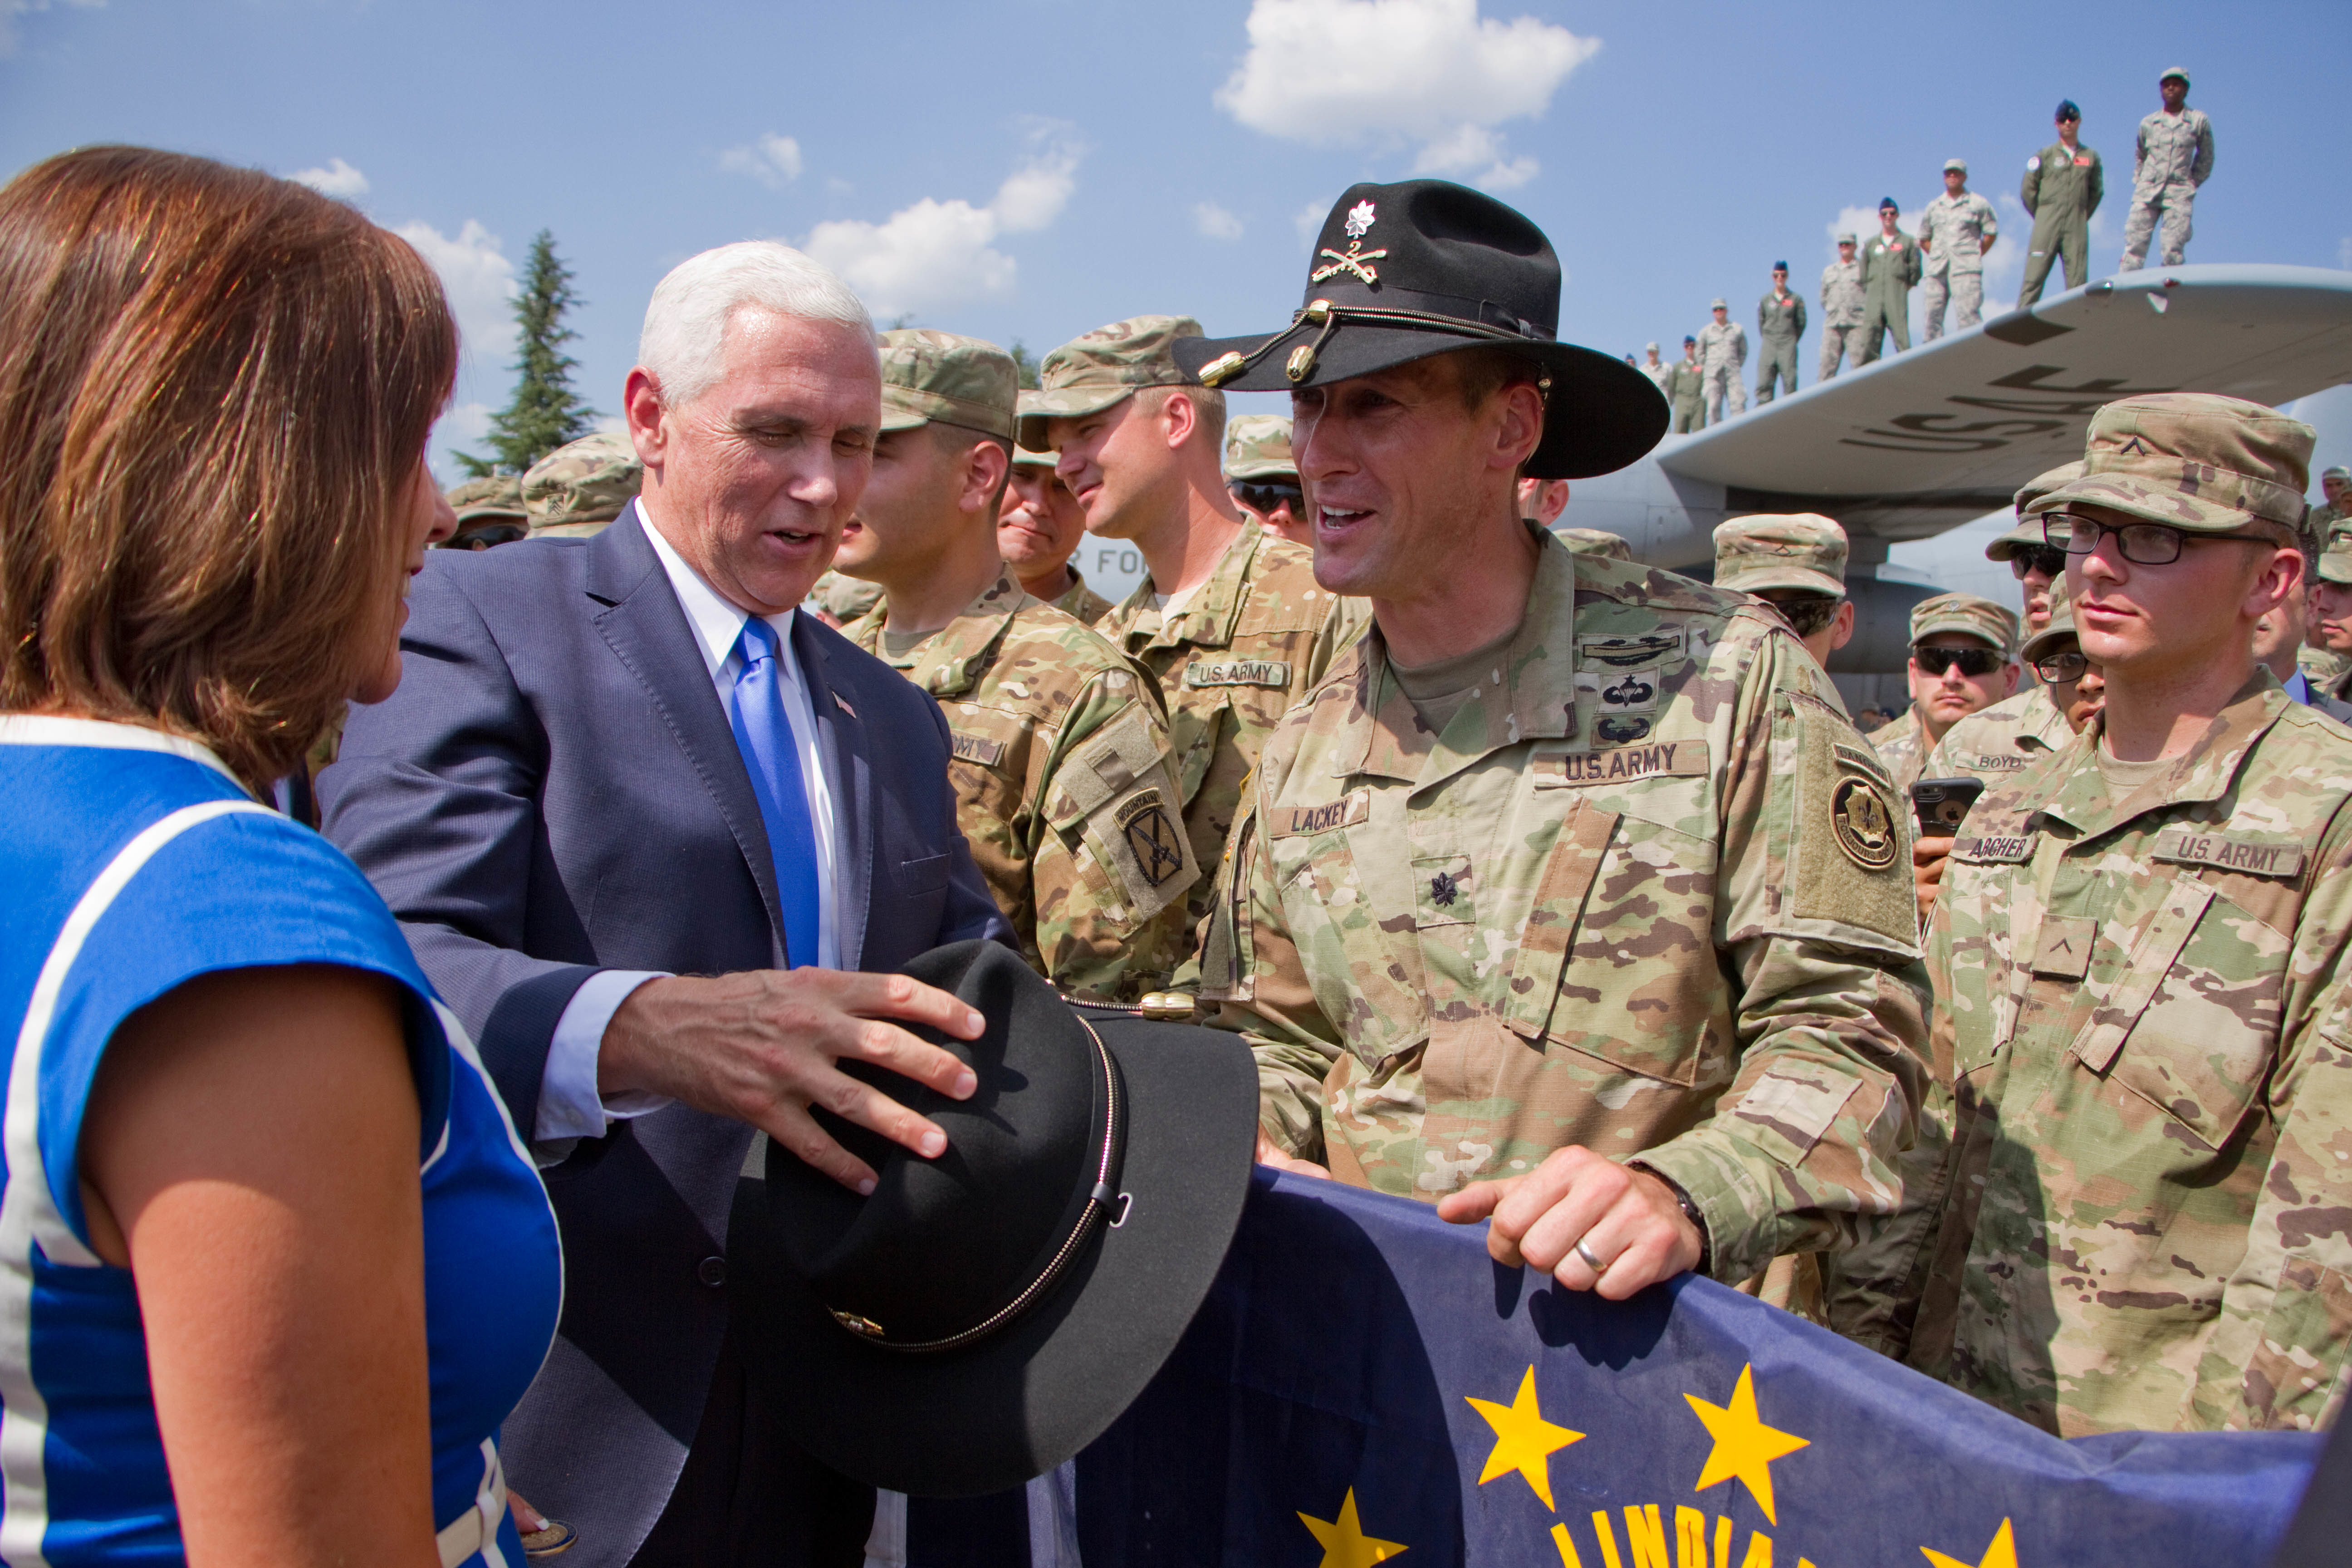 U.S. Vice President Mike Pence received a Cavalry Stetson from Lt. Col. Adam Lackey, commander for 1st Squadron, 2d Cavalry Regiment during a ceremony Aug. 1, 2017 in Tbilisi, Georgia for Noble Partner 17. It is tradition for a cavalry soldier to wear the iconic headgear for ceremonies and special dates. The Squadron is in Georgia for Noble Partner 17, a U.S. Army Europe-led exercise designed to support the training, progression and eventual certification of Georgia's second light infantry company's contribution to the NATO Response Force. The training will take place at the Vaziani Training Area.